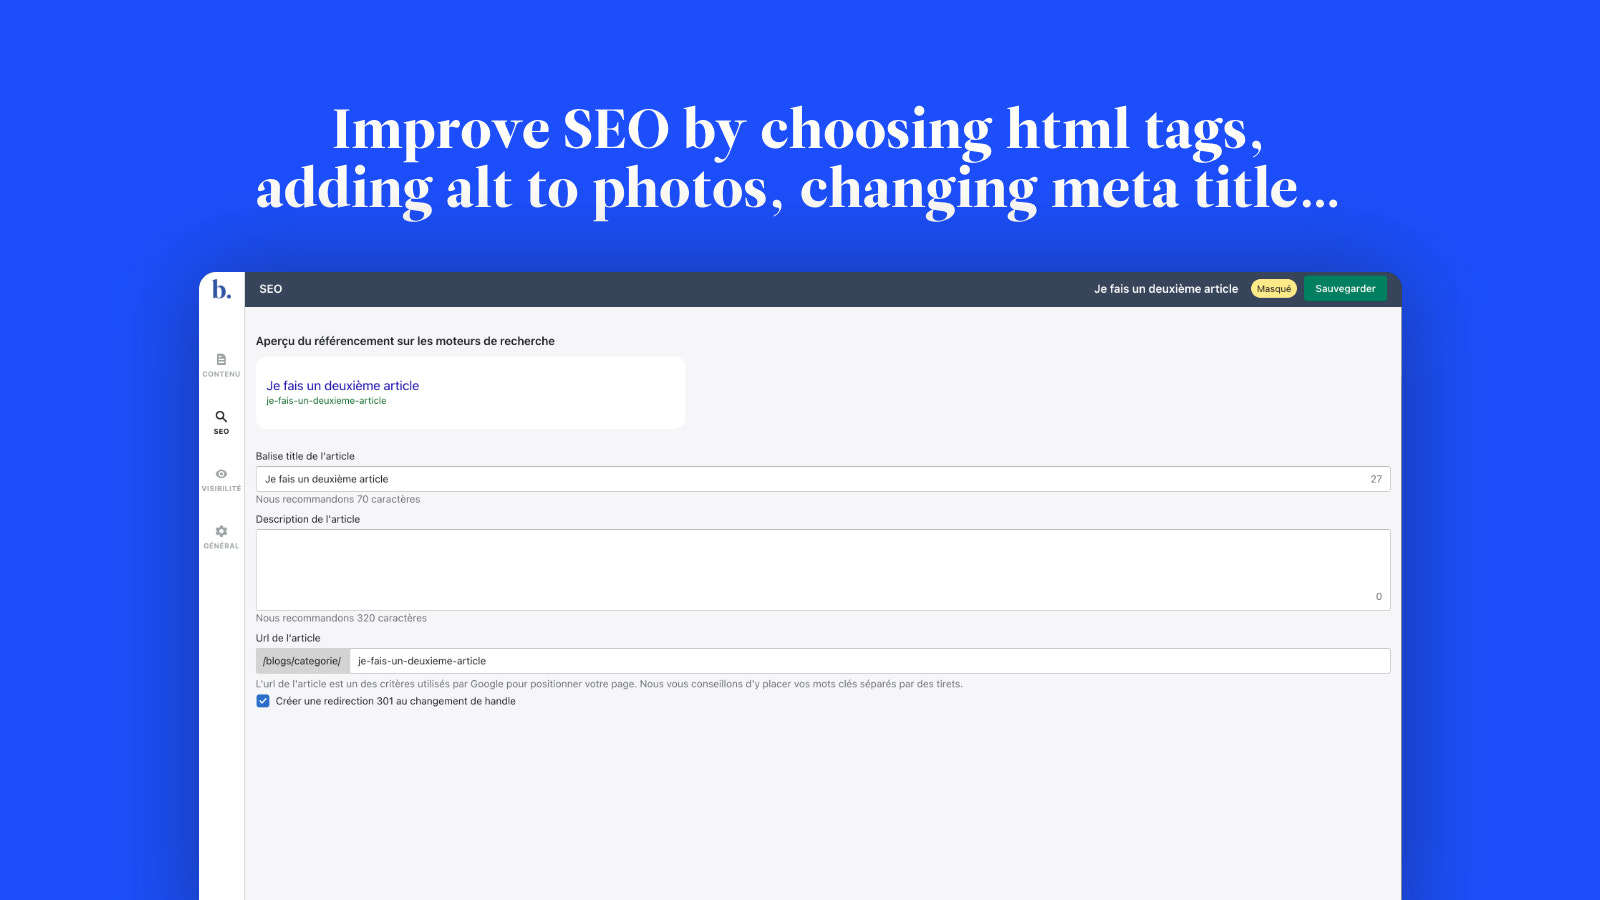 Improve SEO by choosing the proper HTML tag